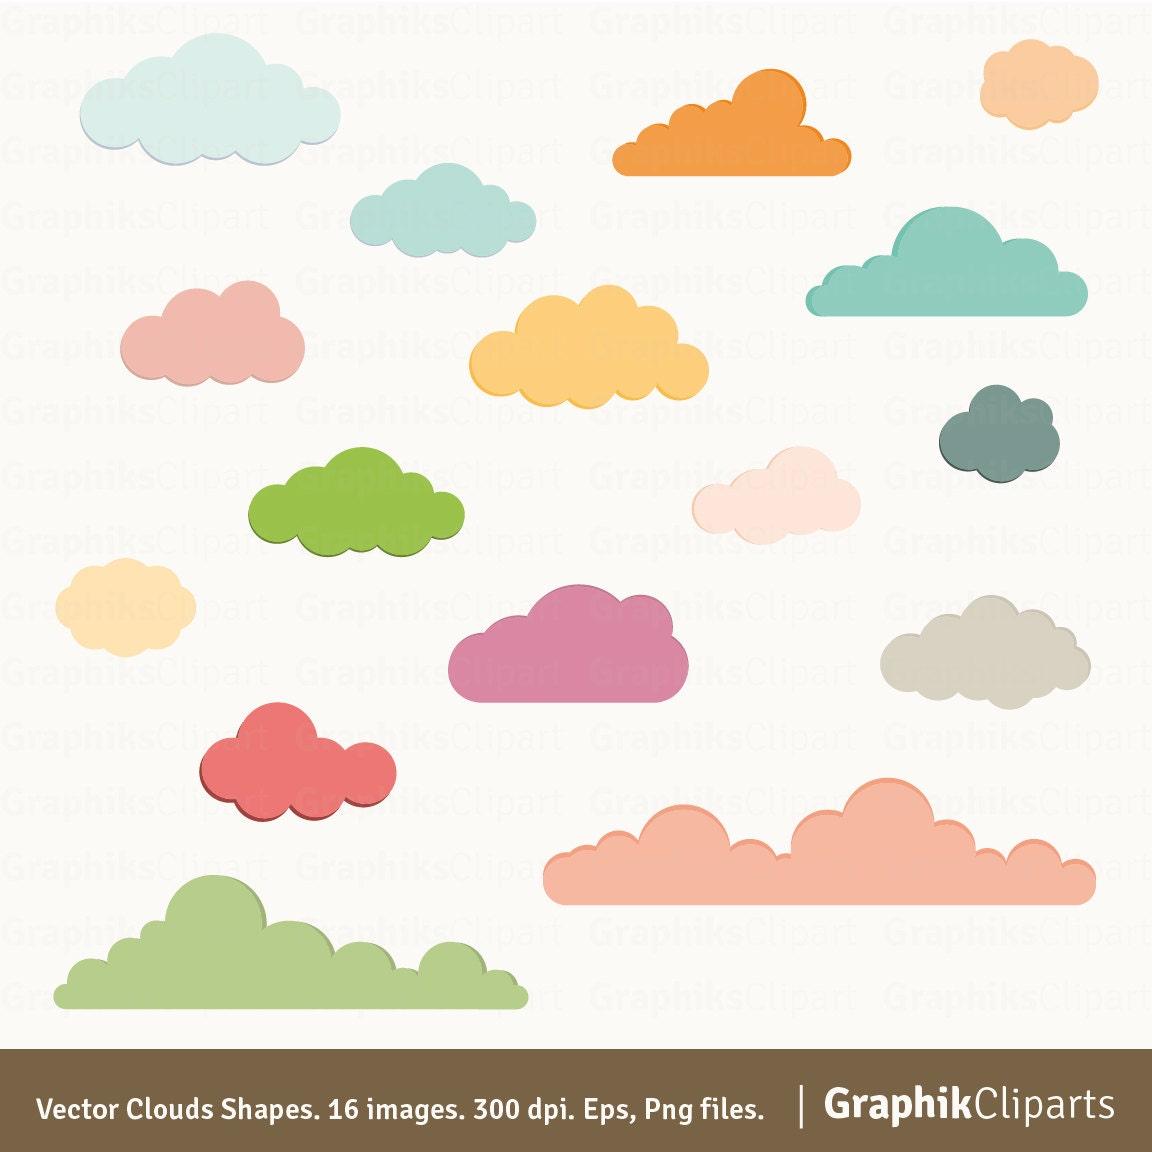 Vector clouds shapes clouds clipart vector clouds baby zoom stopboris Choice Image